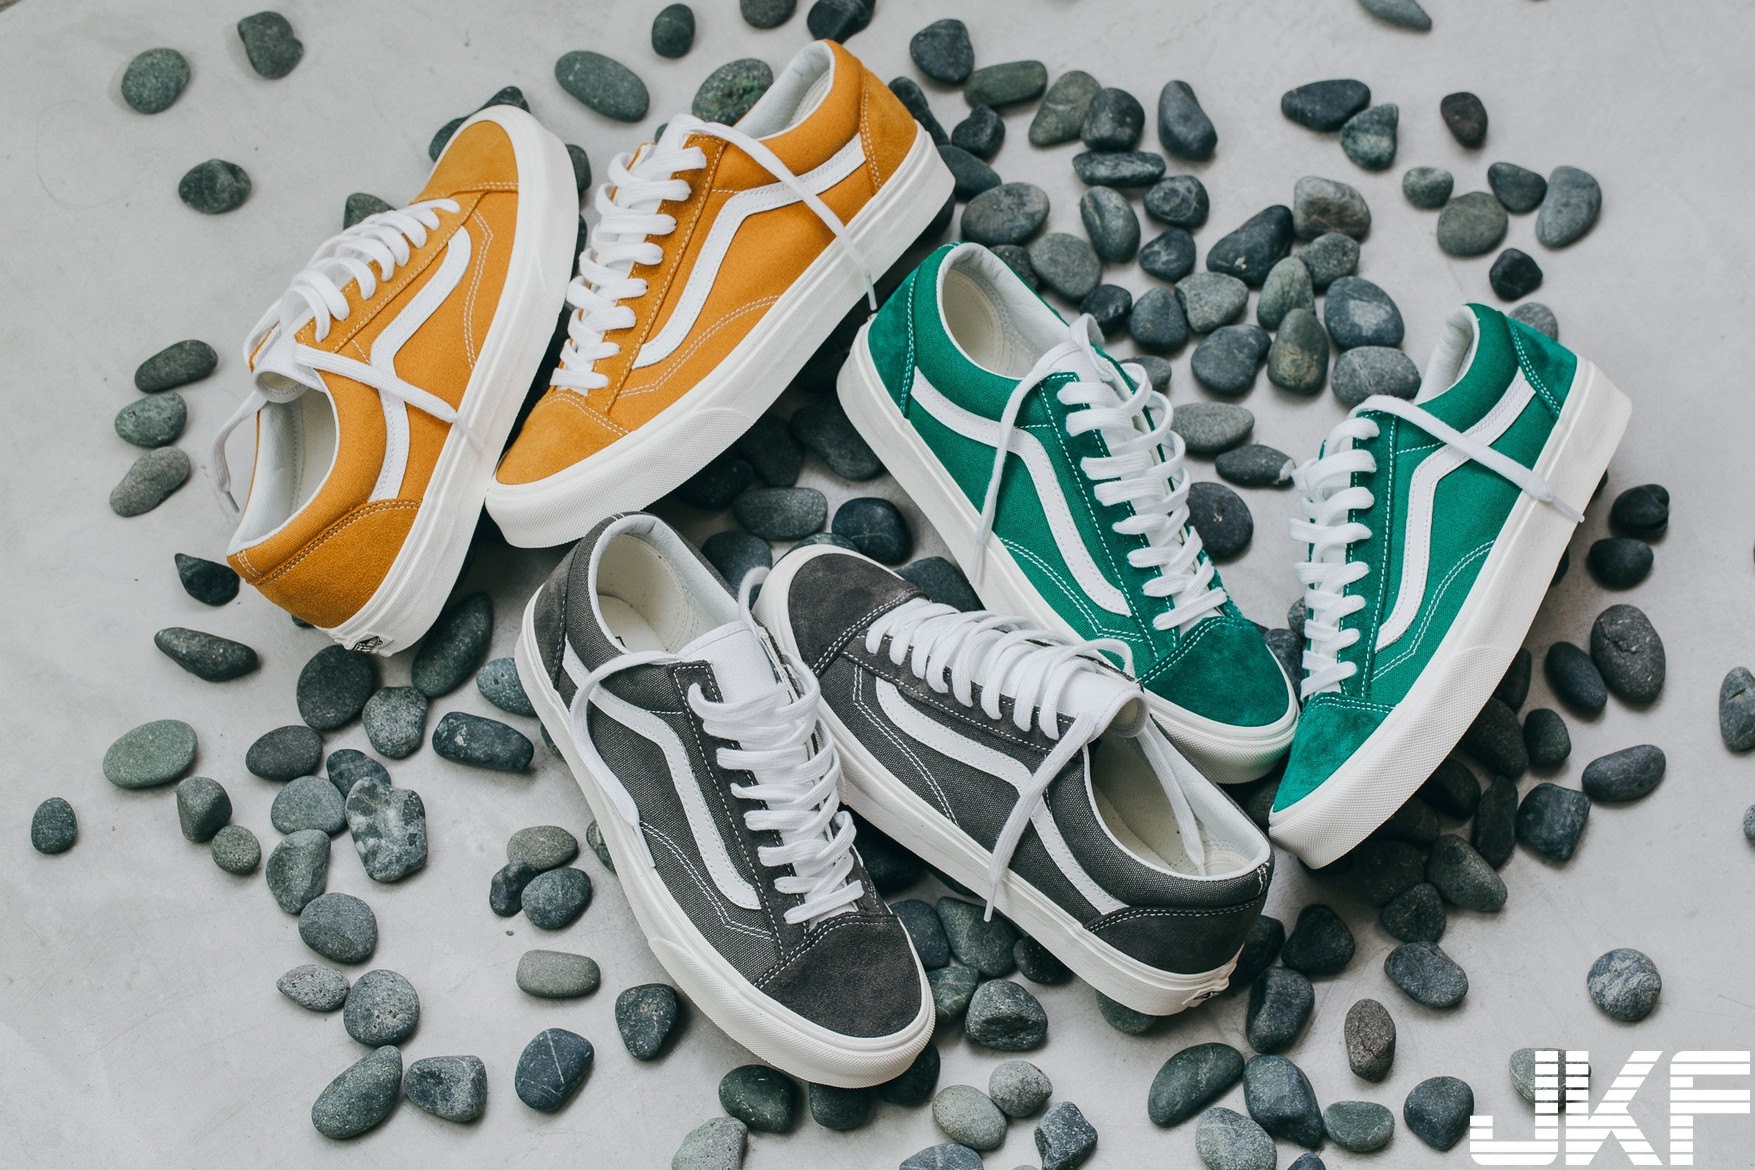 https_%2F%2Fhk.hypebeast.com%2Ffiles%2F2018%2F07%2Fbrand-new-color-vans-style-36-5.jpg